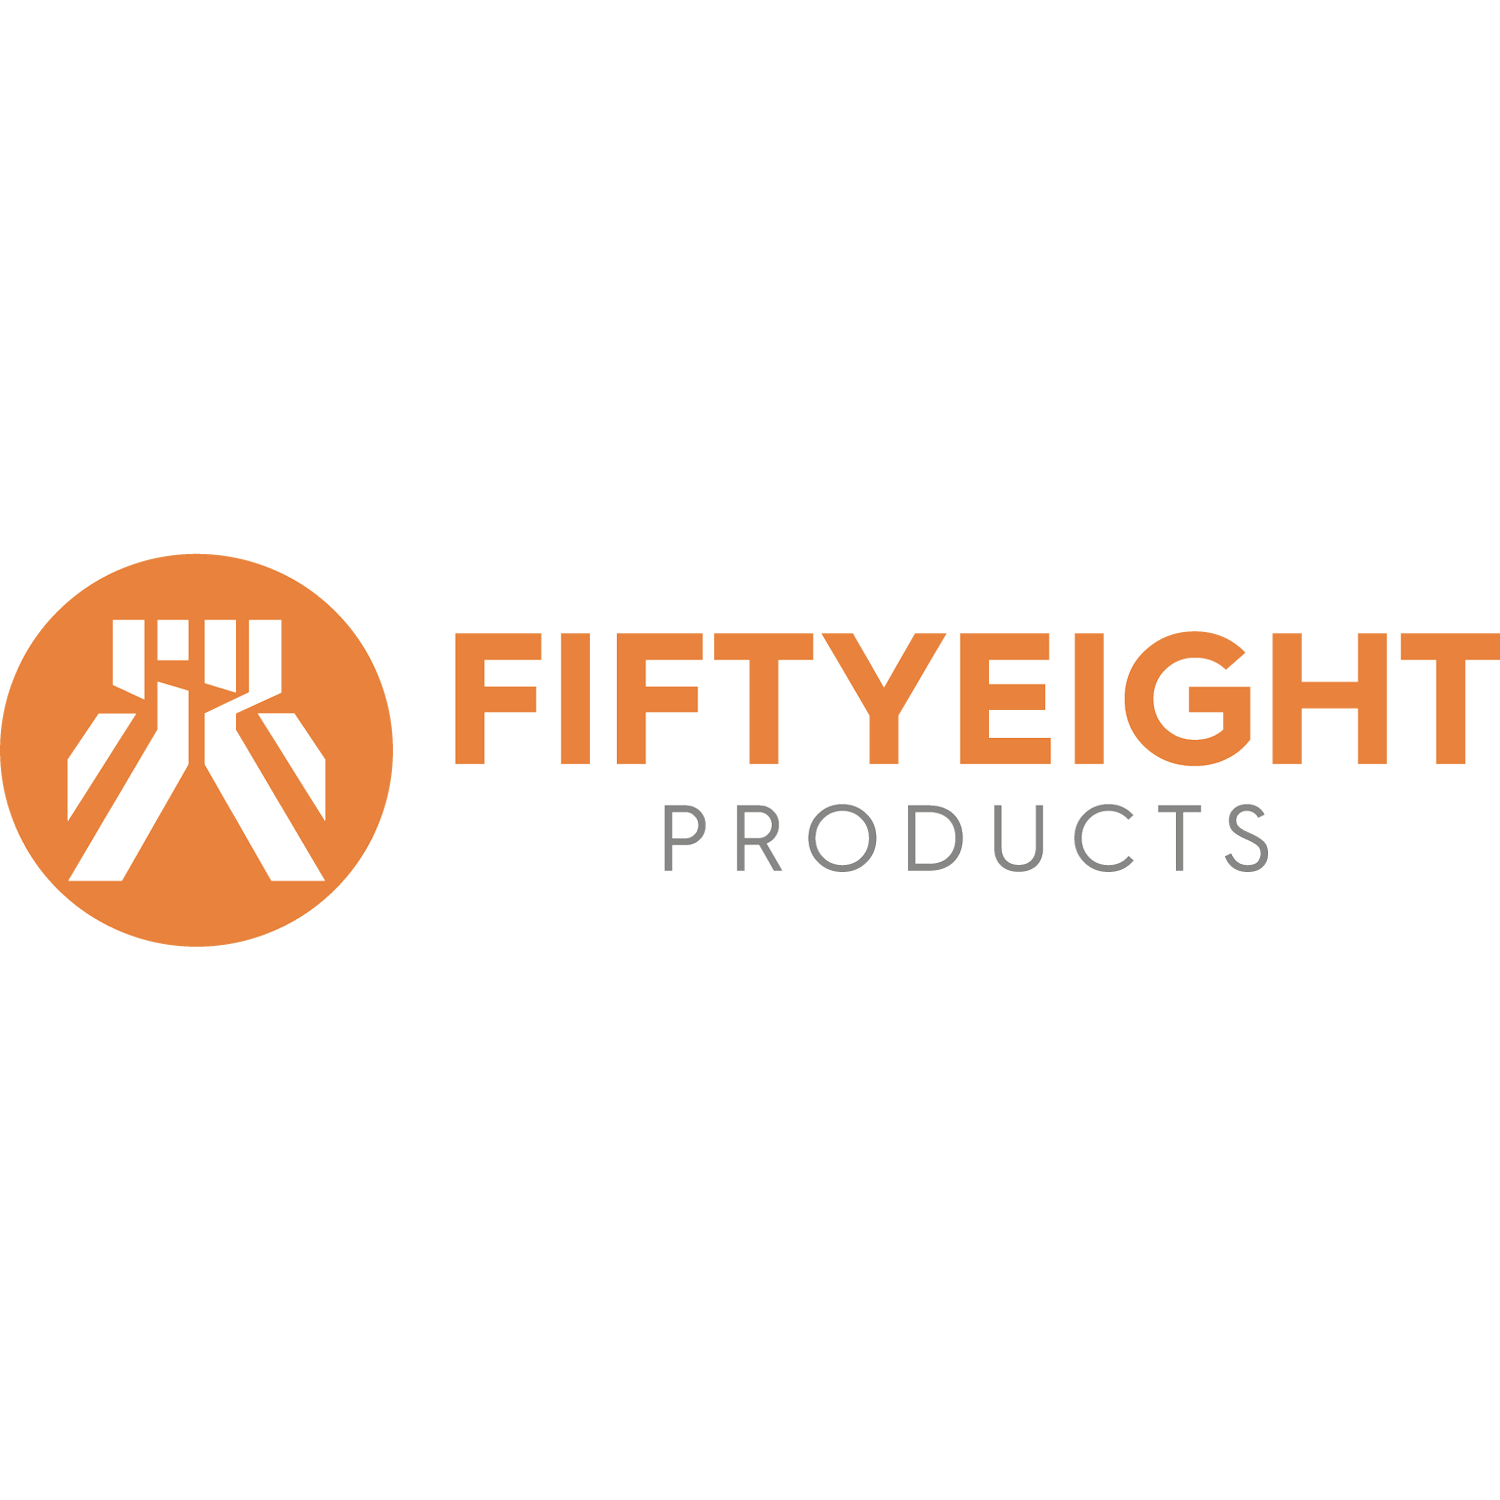 58Products